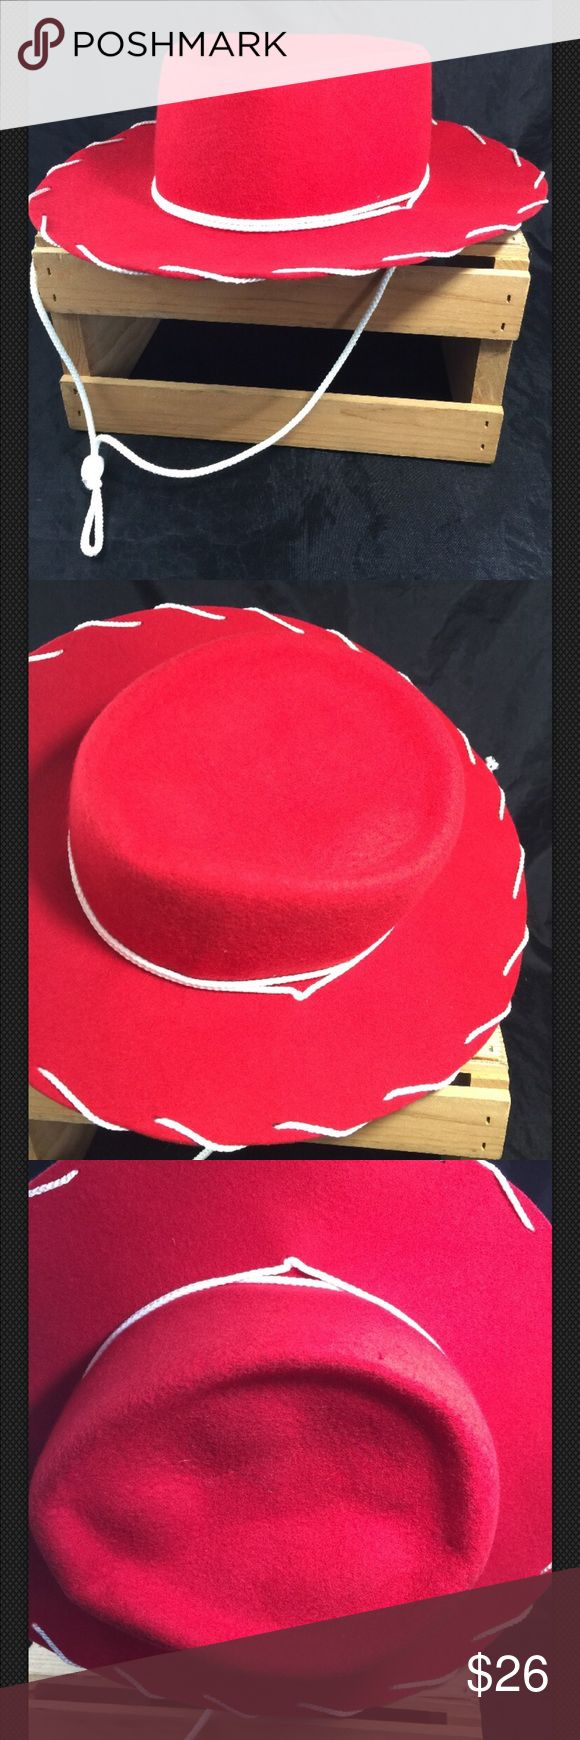 "LHC Red Cowboy Hat LHC Brands Red Cowboy Hat Youth Kids Size Small Half Pint 100% Wool  This is an adorable red hat for kids  Size small / half pint Hat would work perfect for Halloween, photo shoot, dress up, a play, a collectors item, or whatever you can use you imagination to use it for!! 100% wool  The very top of the hat is slightly misshaped  White rope for under chin  Made in the USA 12"" total length from front to back 11"" total width  6 1/2"" inside front to back  5 1/2"" inside width…"